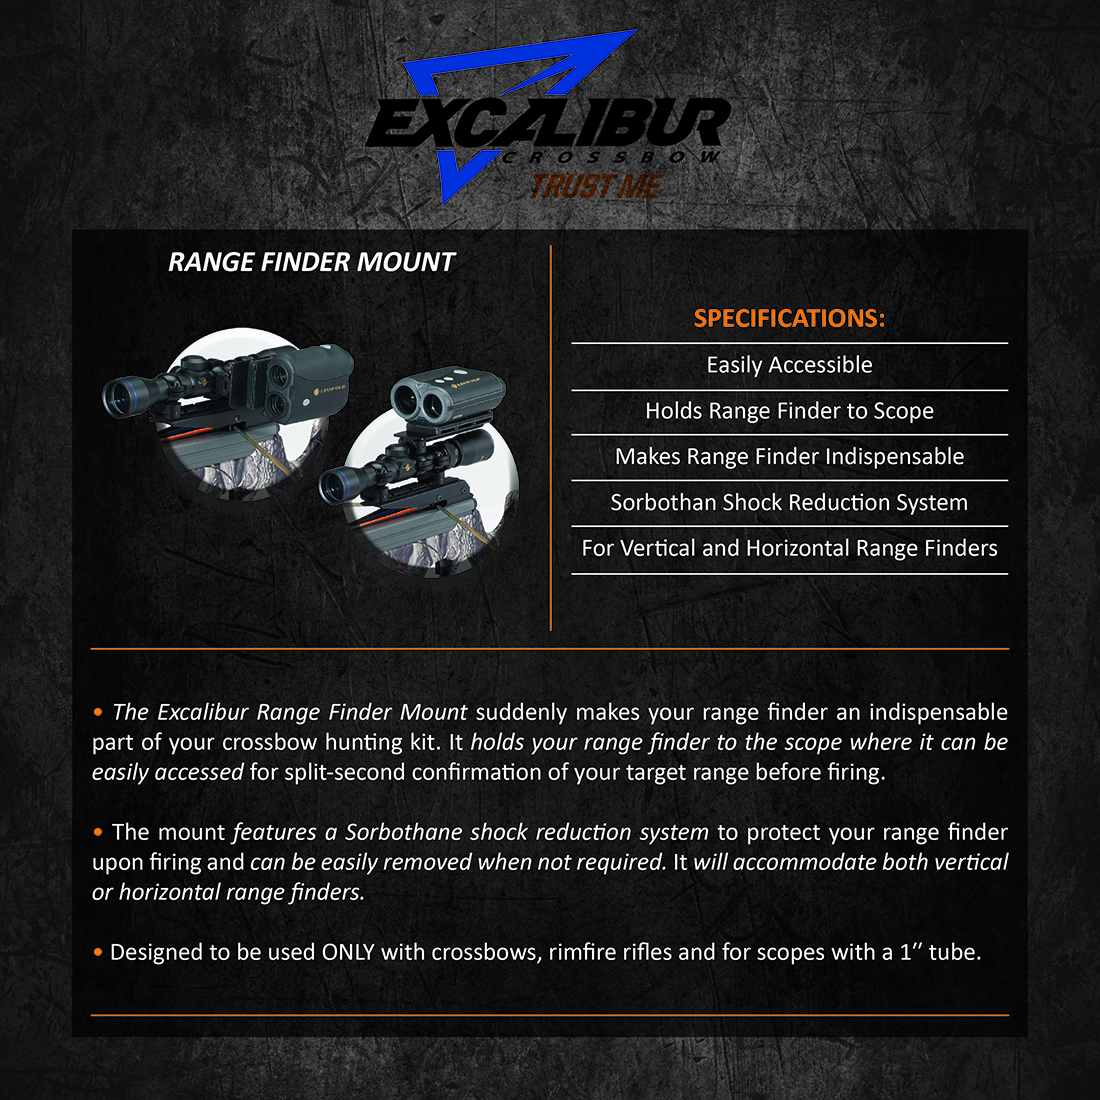 Excalibur_Range_Finder_Mount_Product_Description